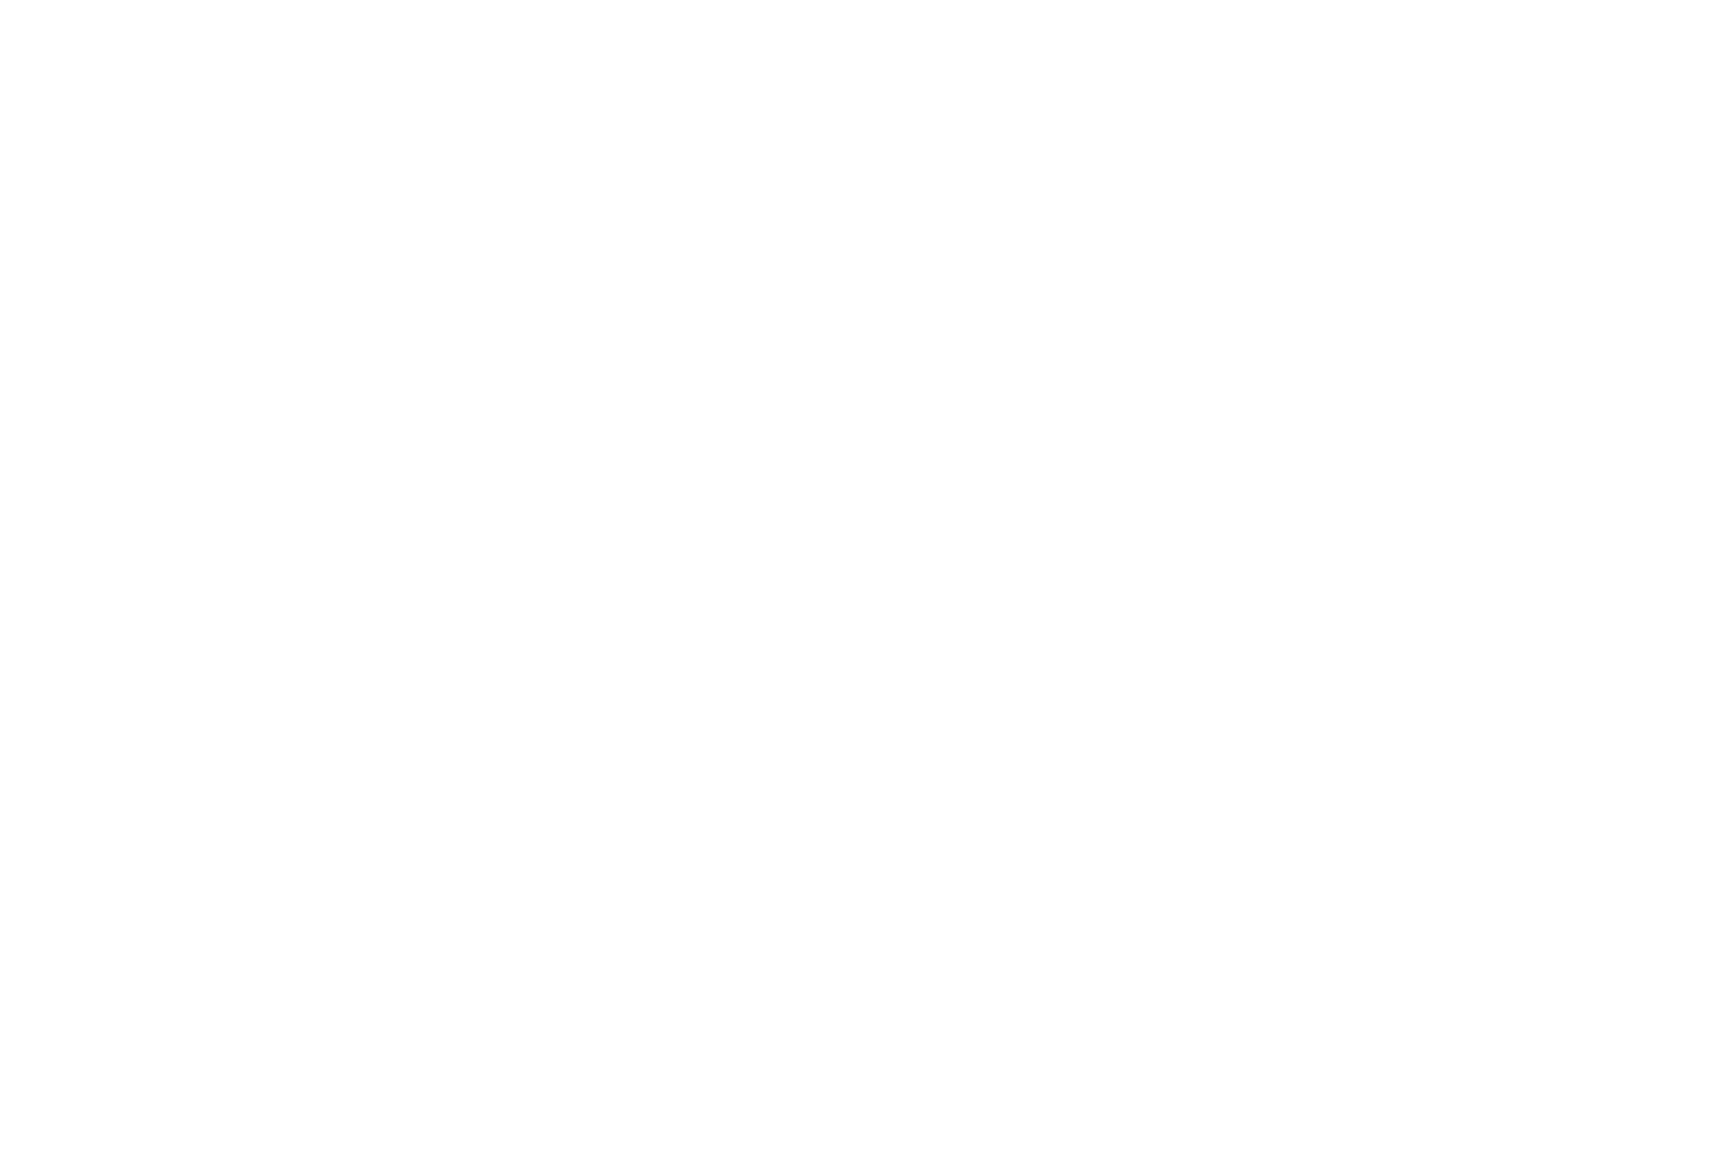 SEMI-FINALIST - Monthly Indie Shorts - 2020